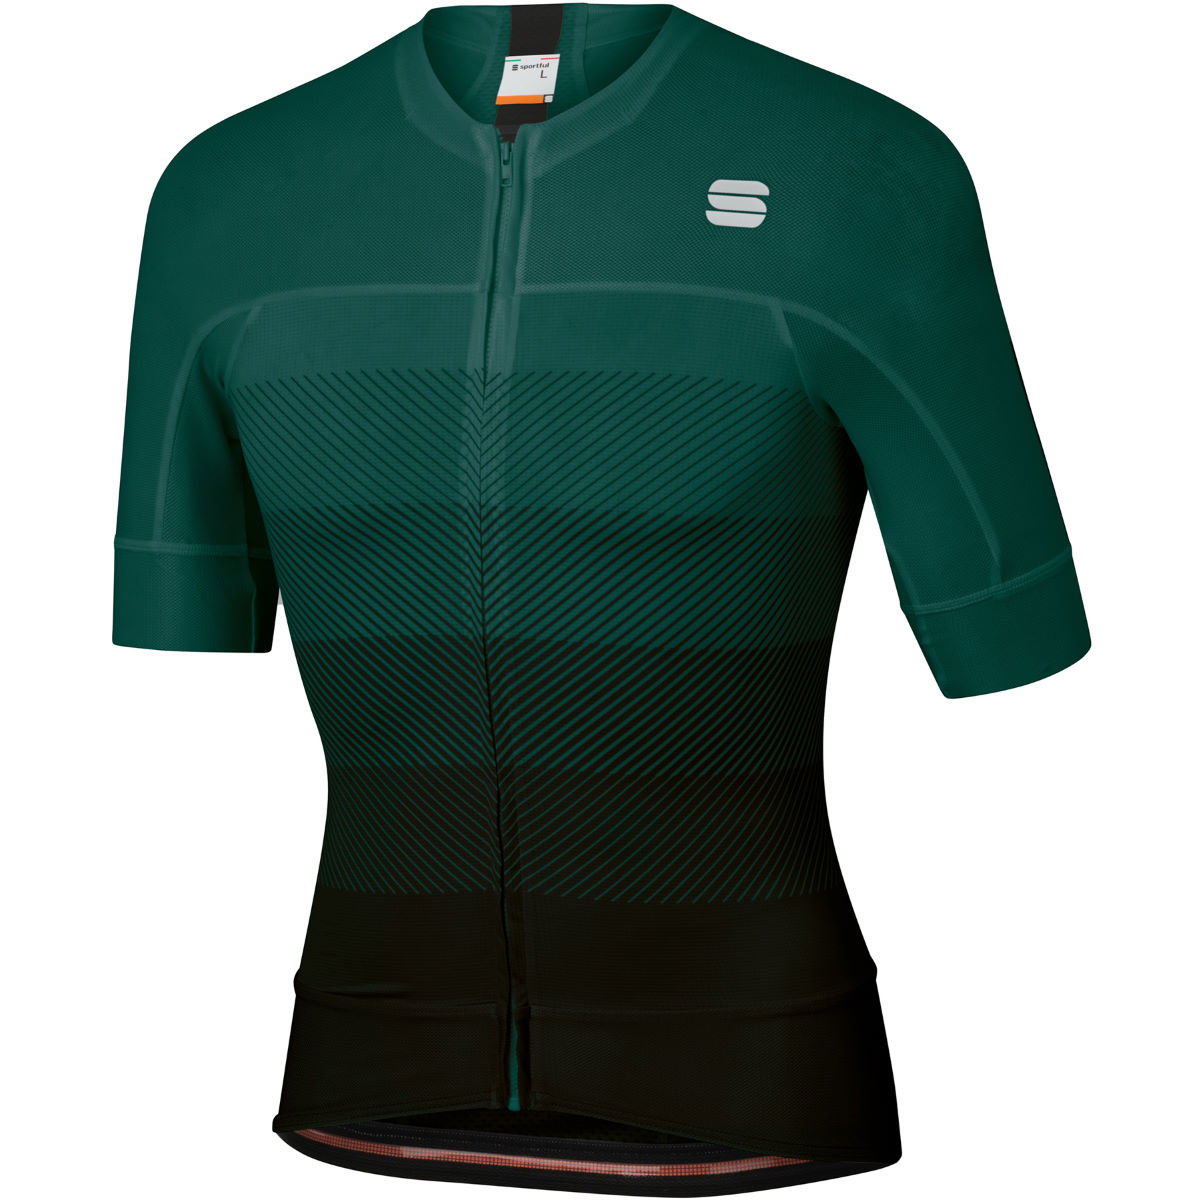 Maillot Sportful BodyFit Pro Evo - Maillots